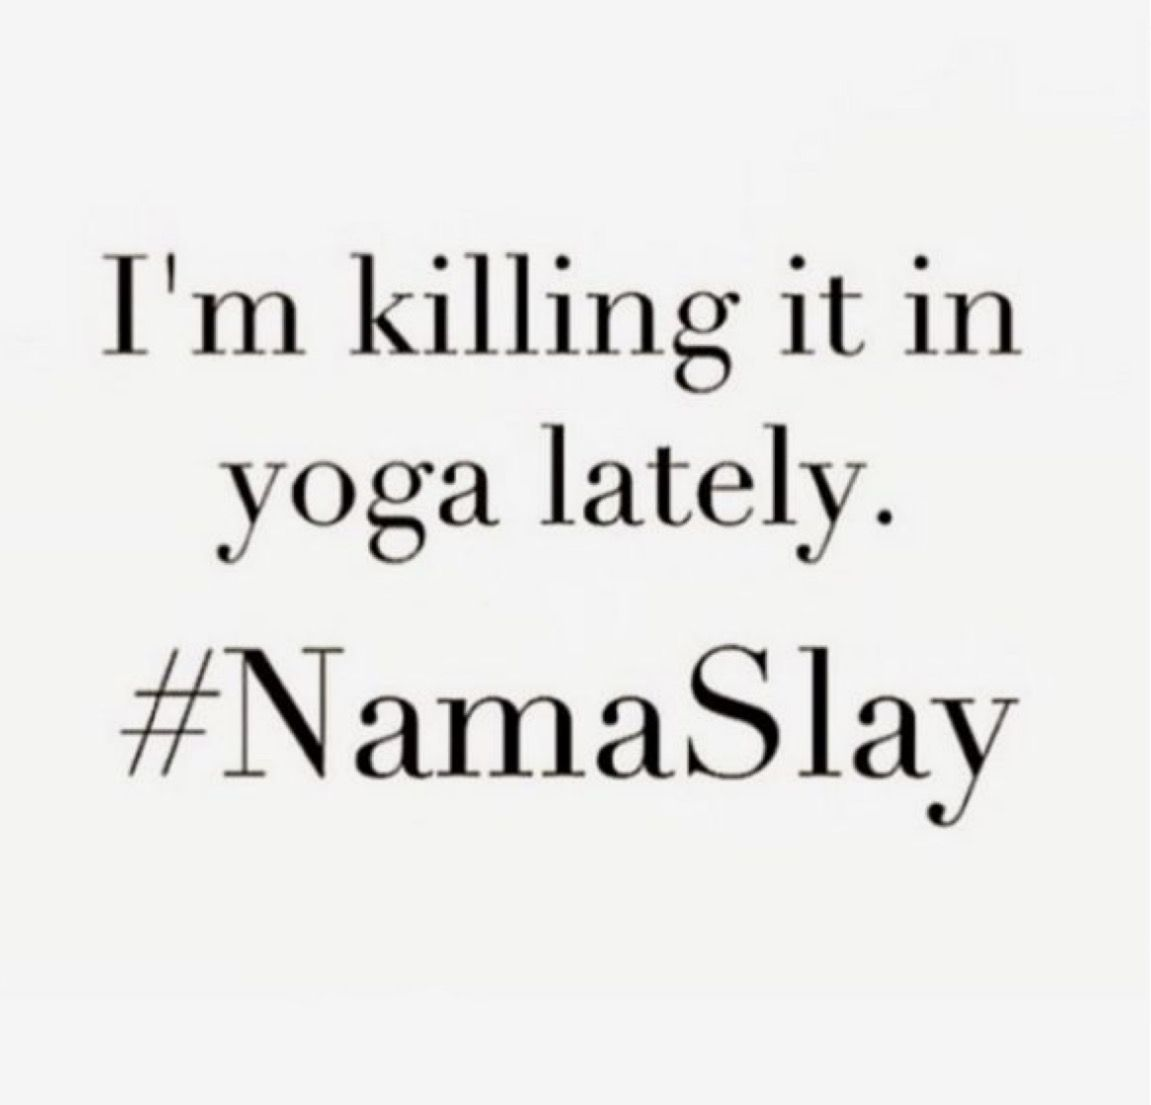 Funny Yoga Quotes NamaSlay Everyday. Funny yoga quotes and thoughts. | Yoga | Yoga  Funny Yoga Quotes